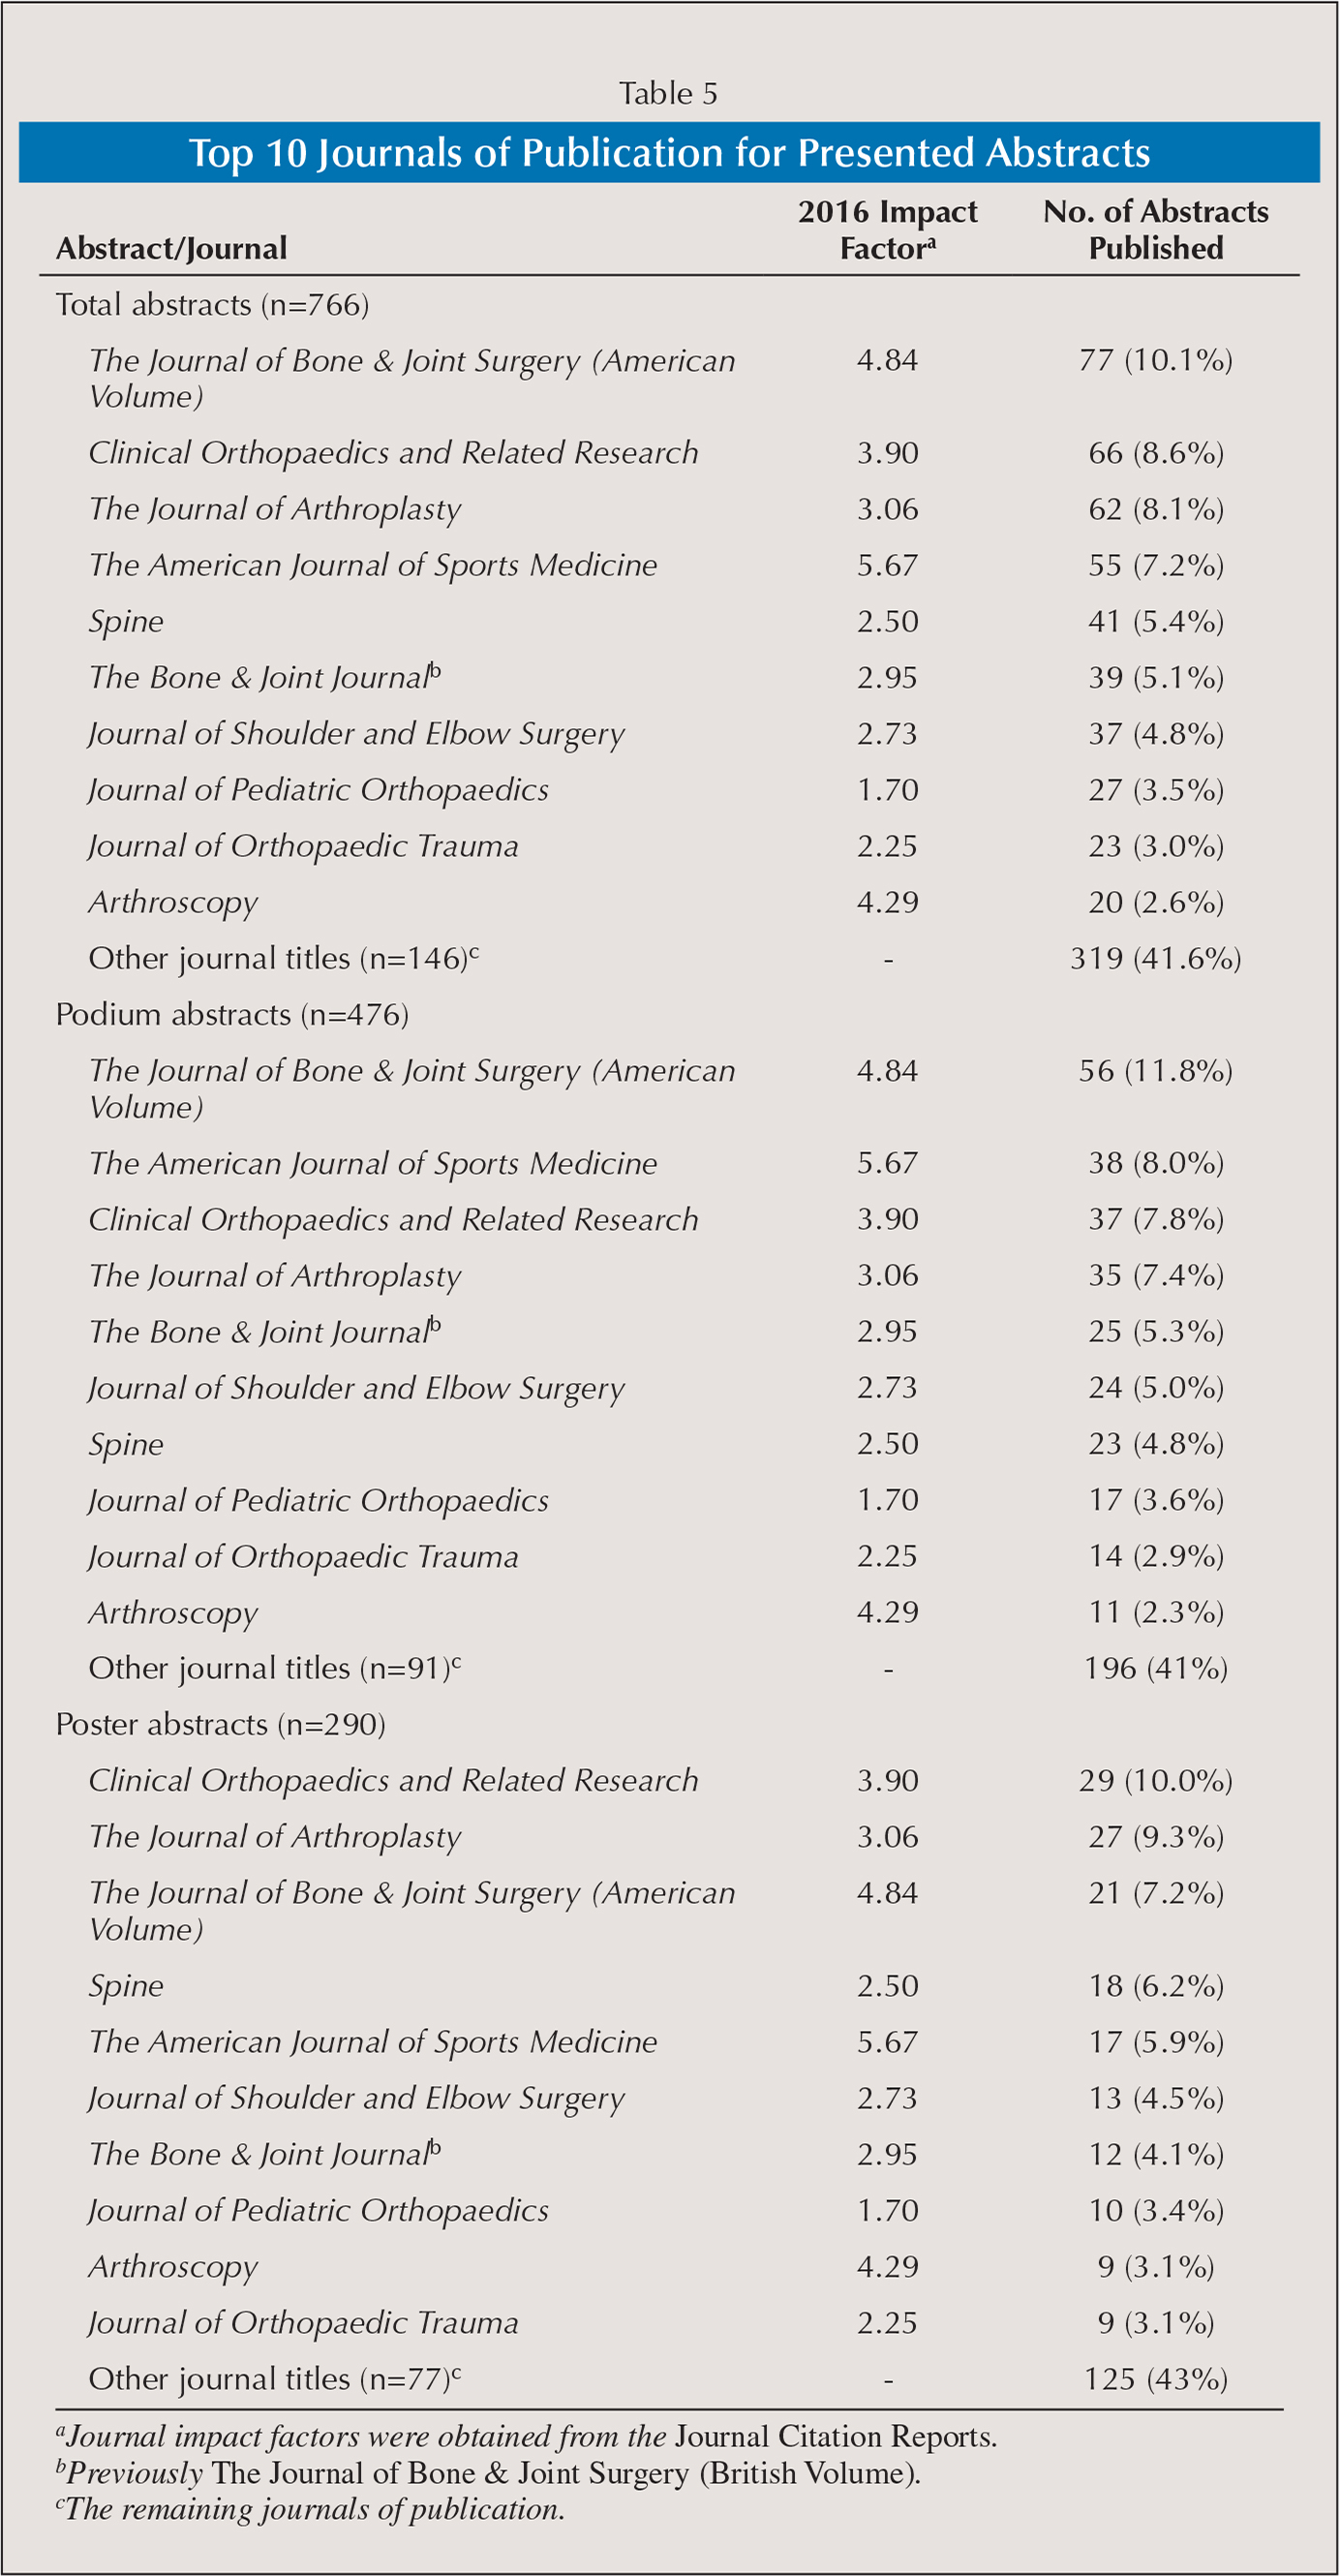 Top 10 Journals of Publication for Presented Abstracts